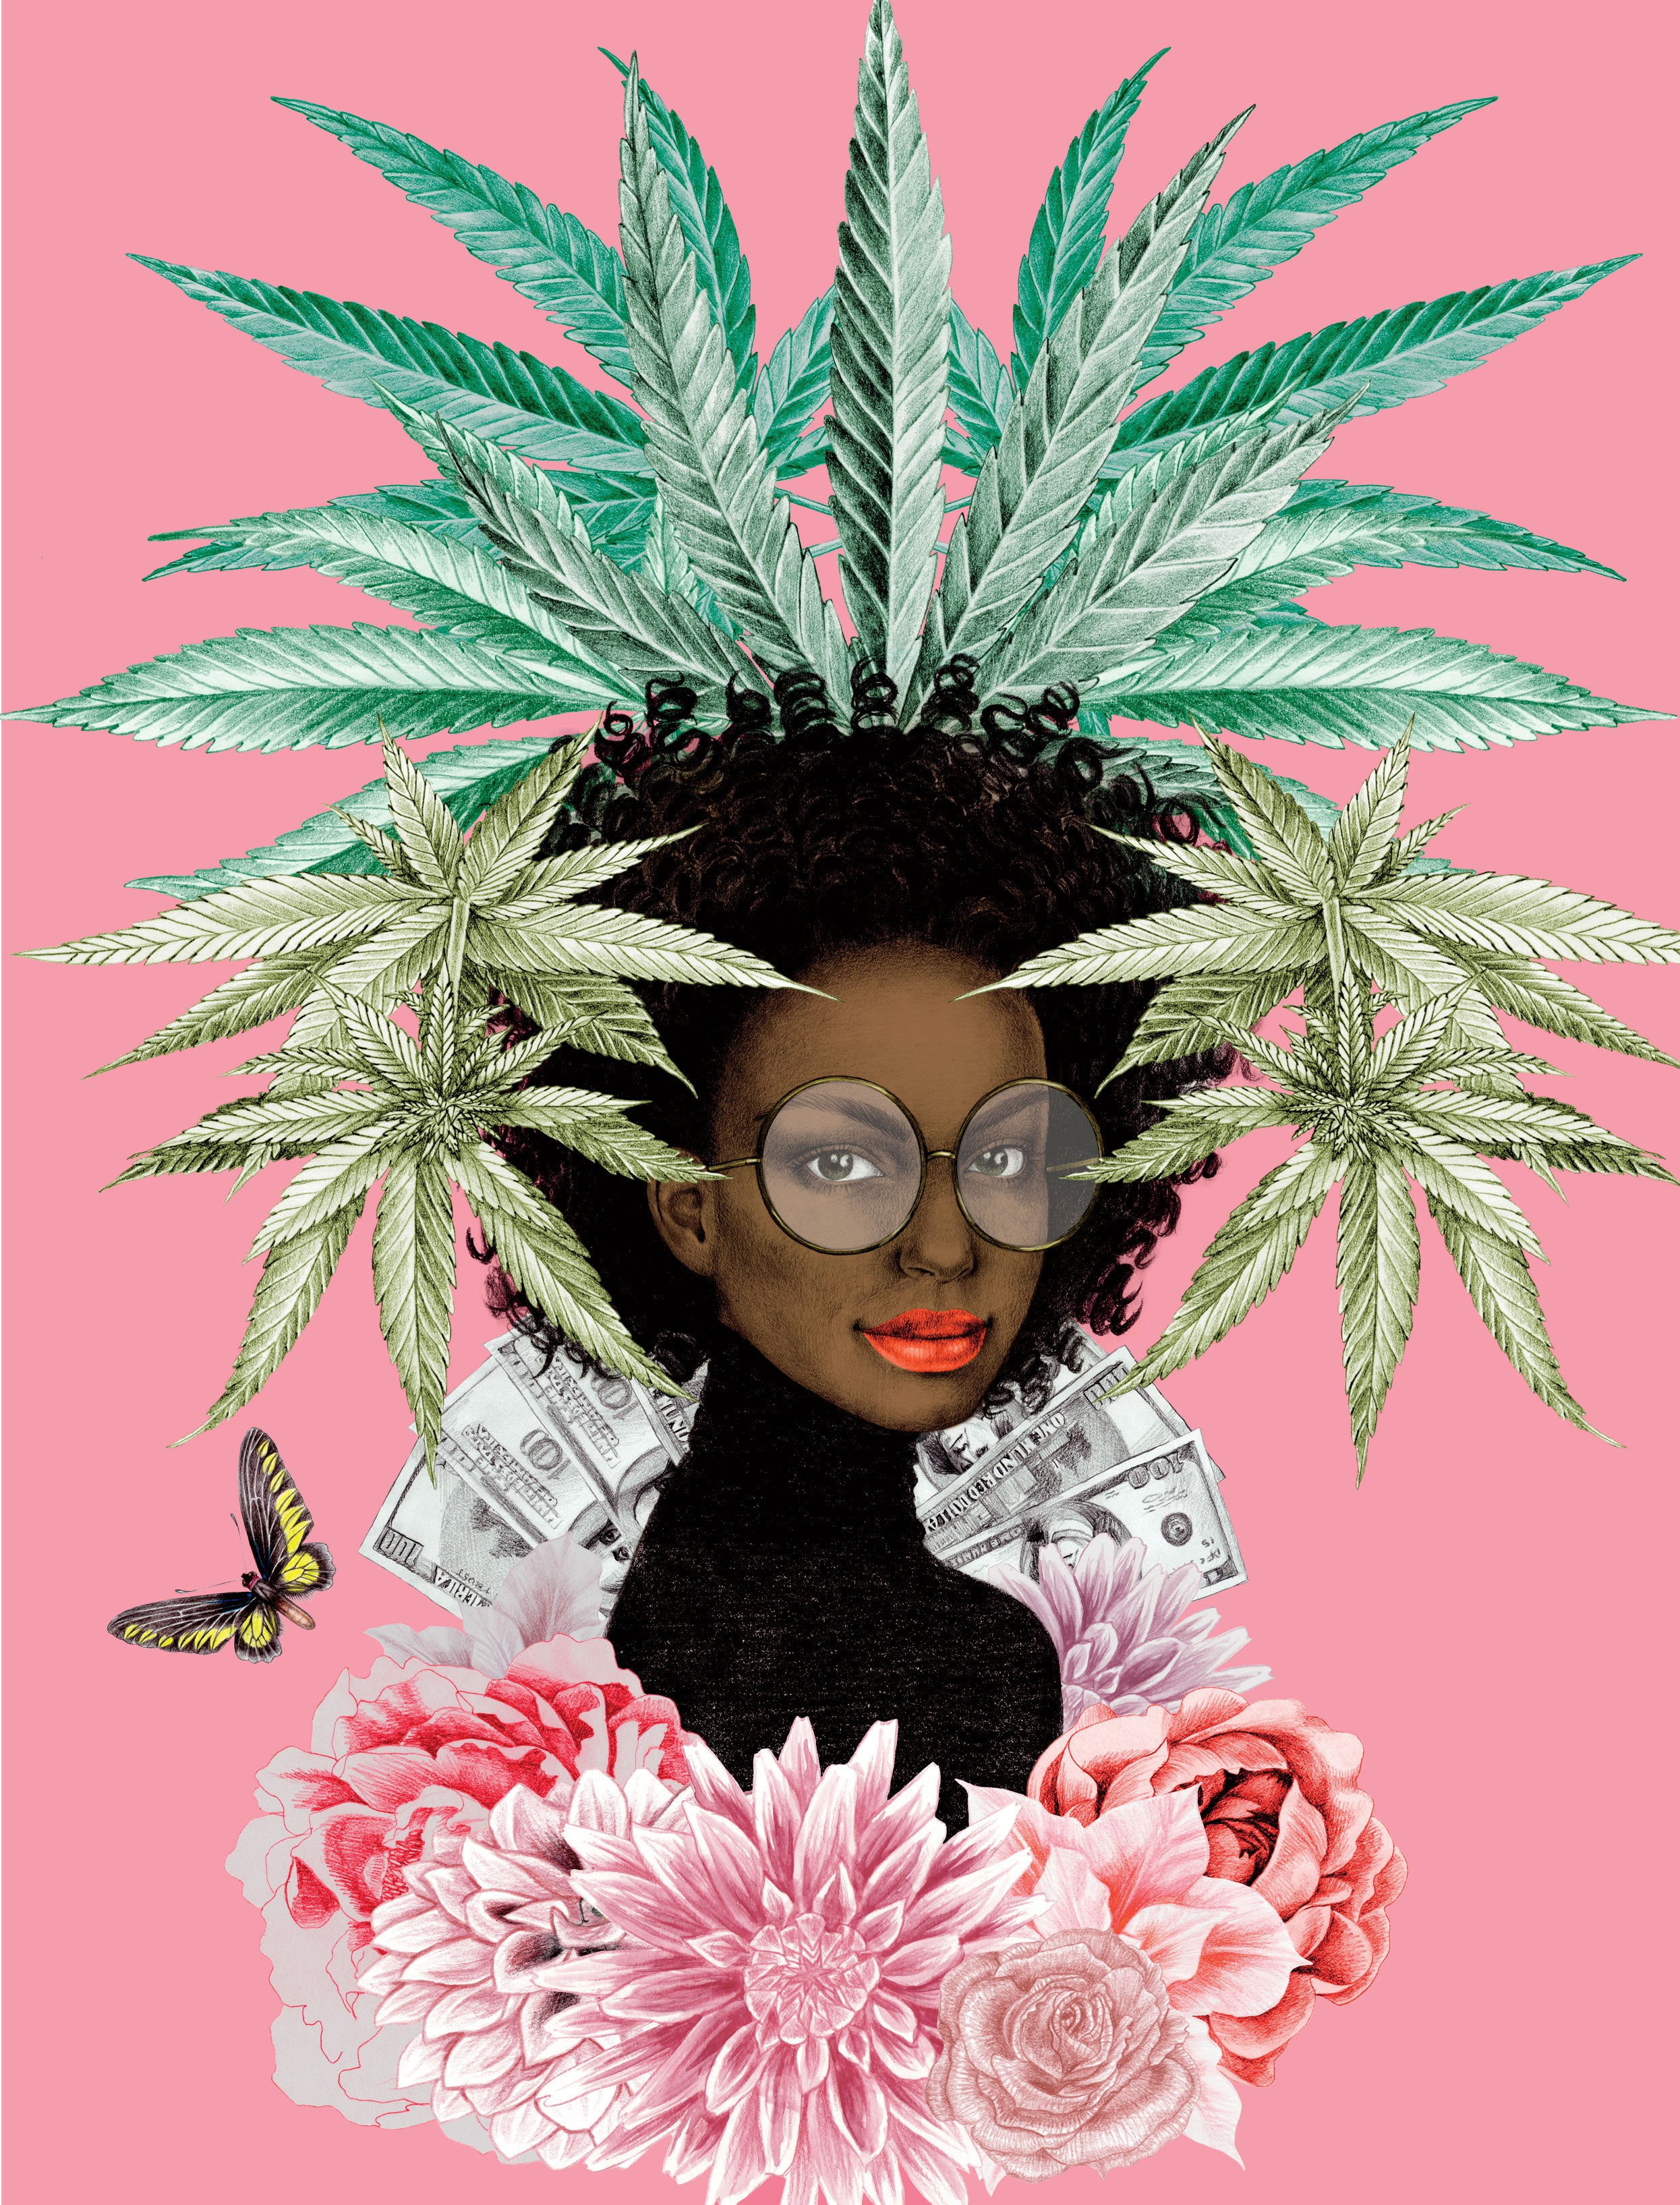 Black Women Know That The Stakes Are High In The Cannabis Industry